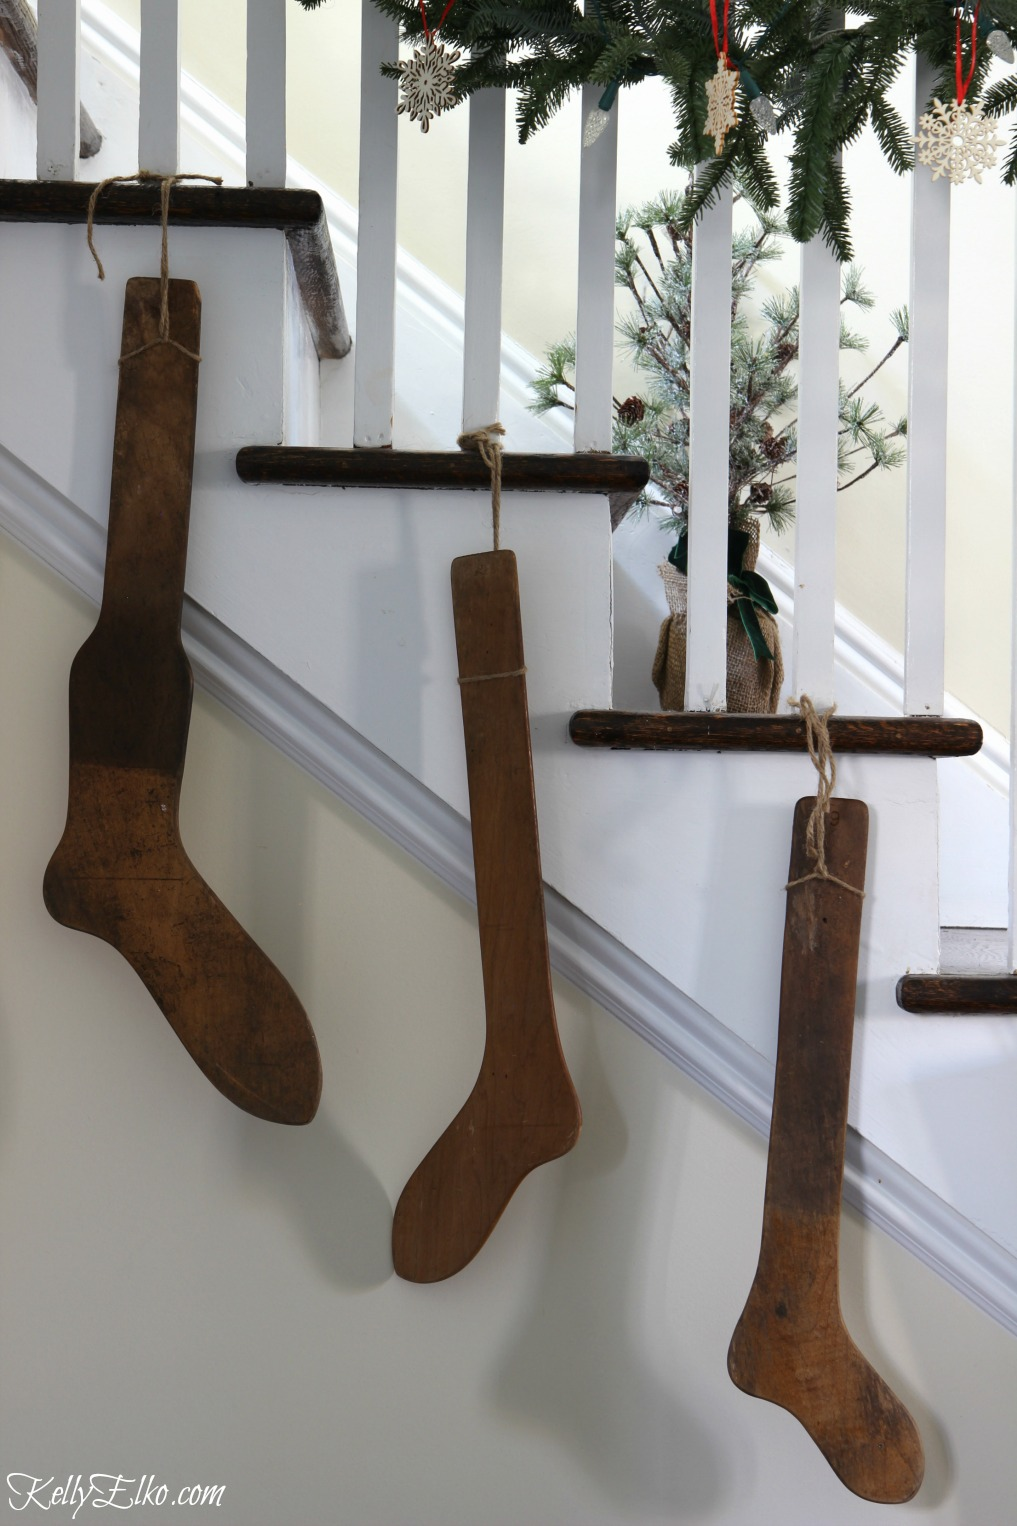 Antique stocking stretchers on the staircase kellyelko.com